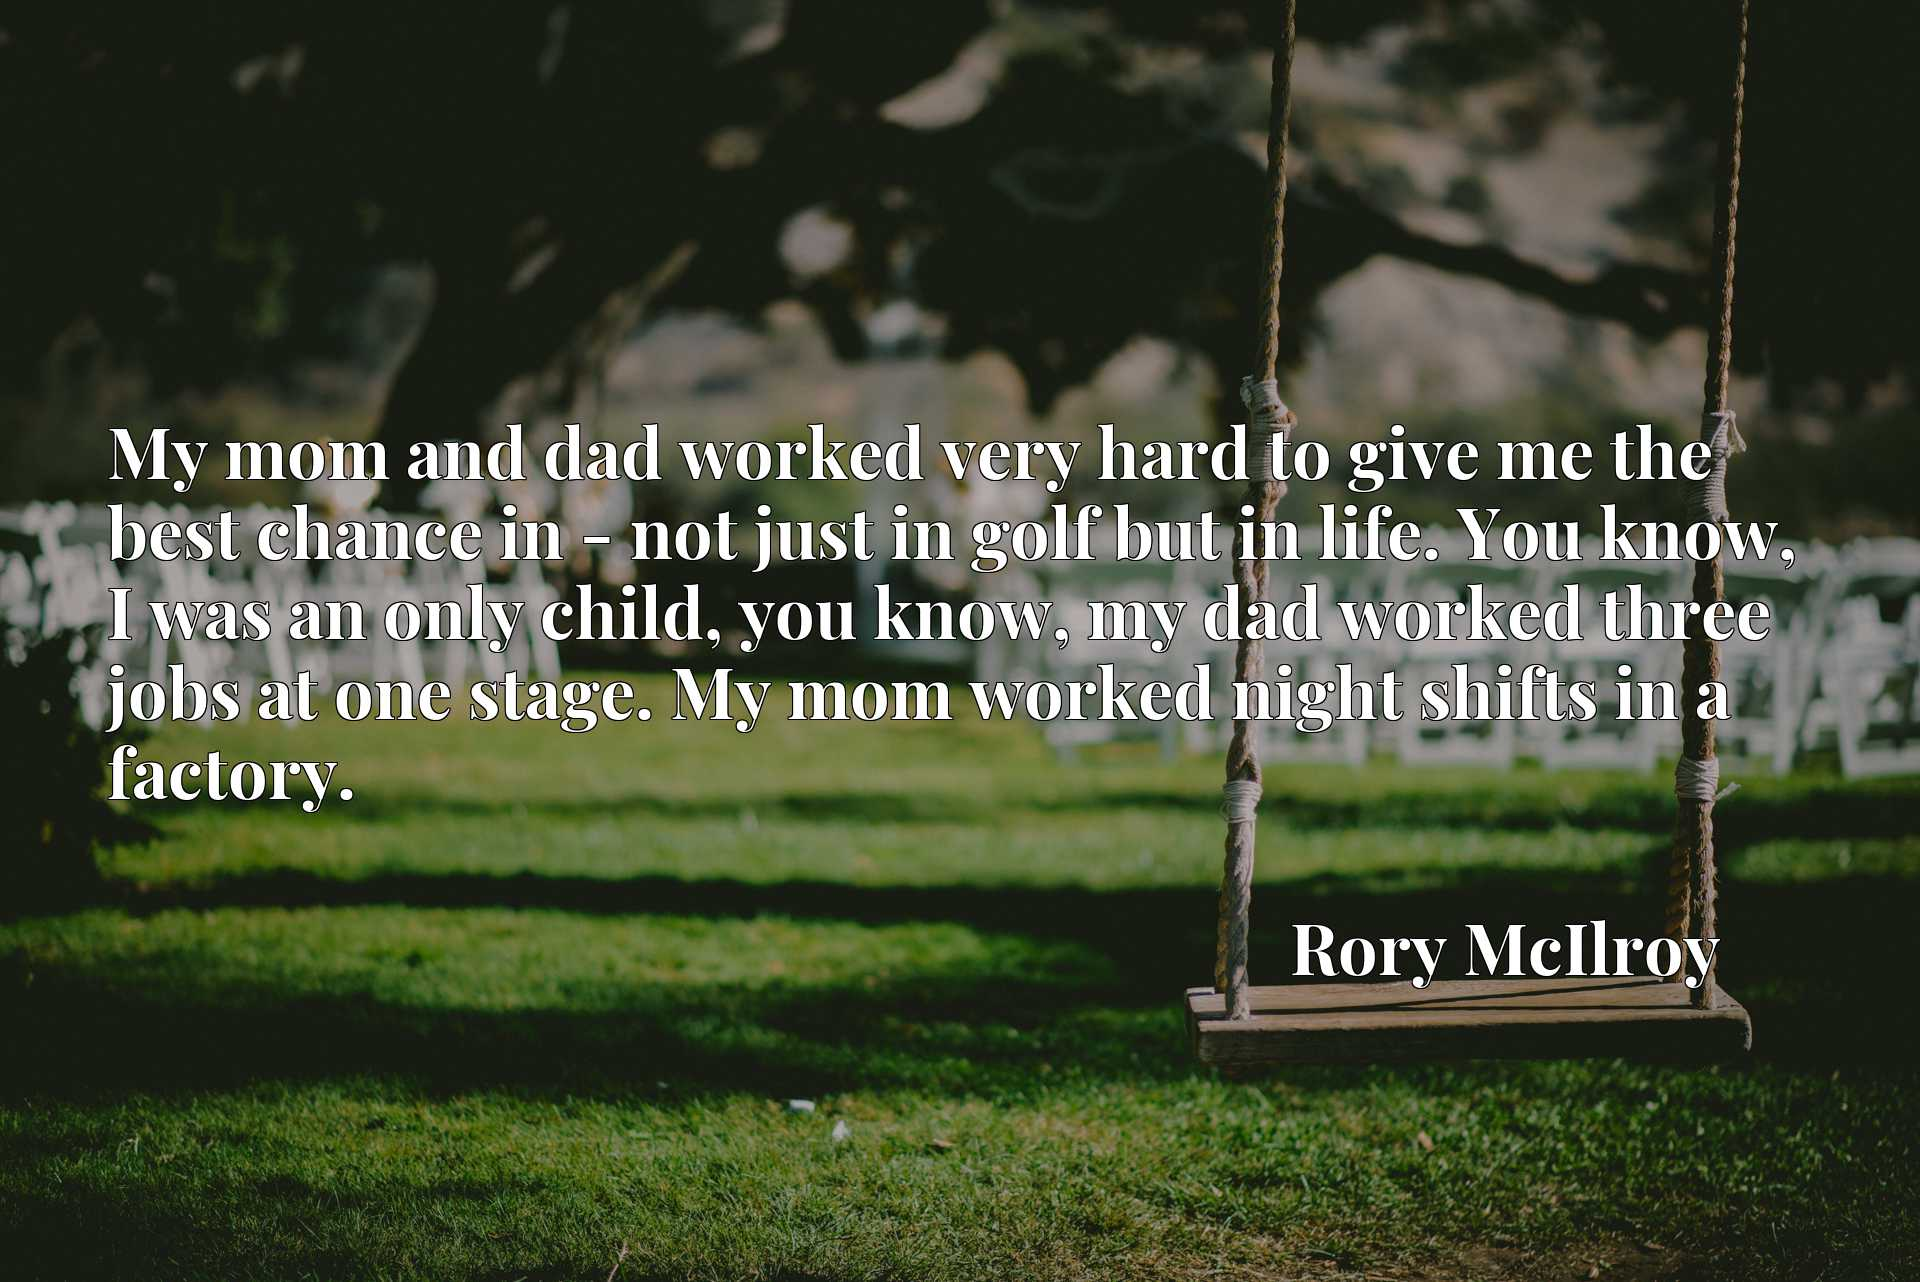 My mom and dad worked very hard to give me the best chance in - not just in golf but in life. You know, I was an only child, you know, my dad worked three jobs at one stage. My mom worked night shifts in a factory.